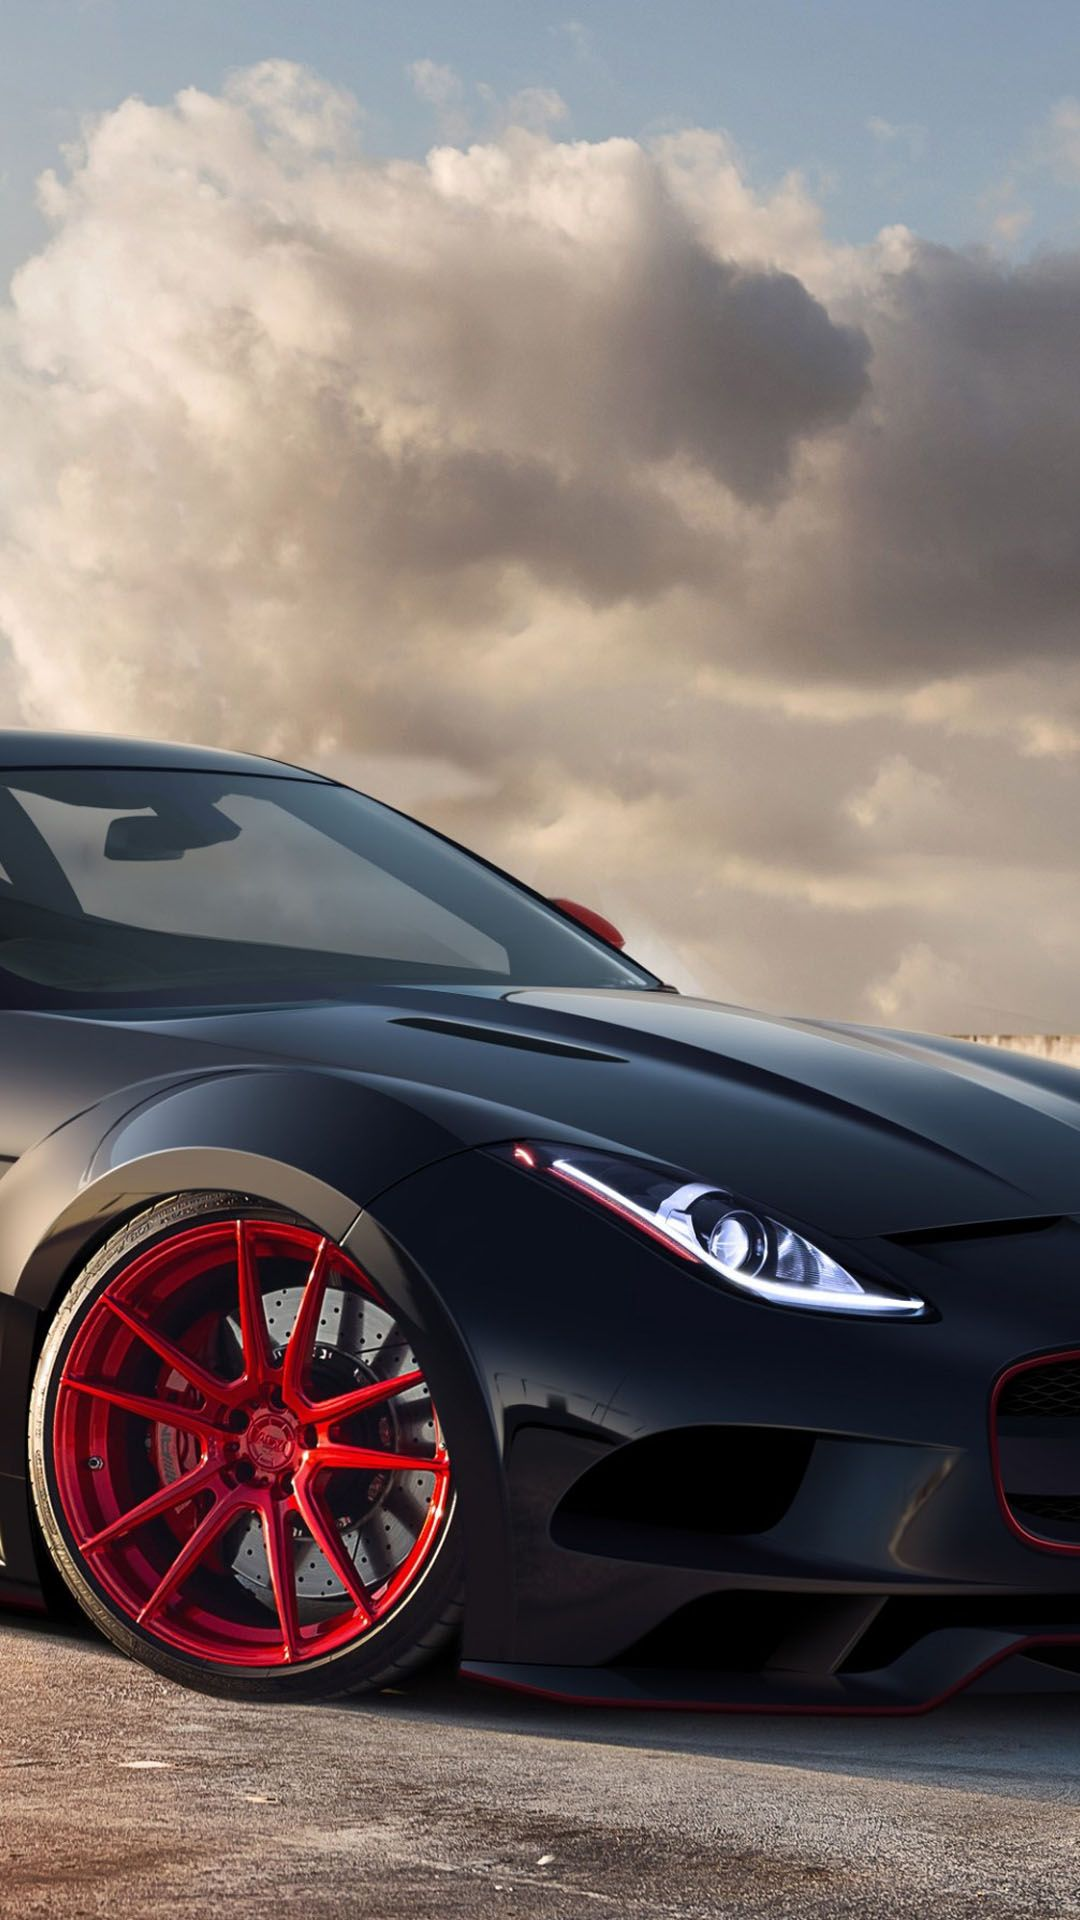 Jaguar C X16 Black Red Rims Iphone 6 Plus Wallpaper Iphone 6 8